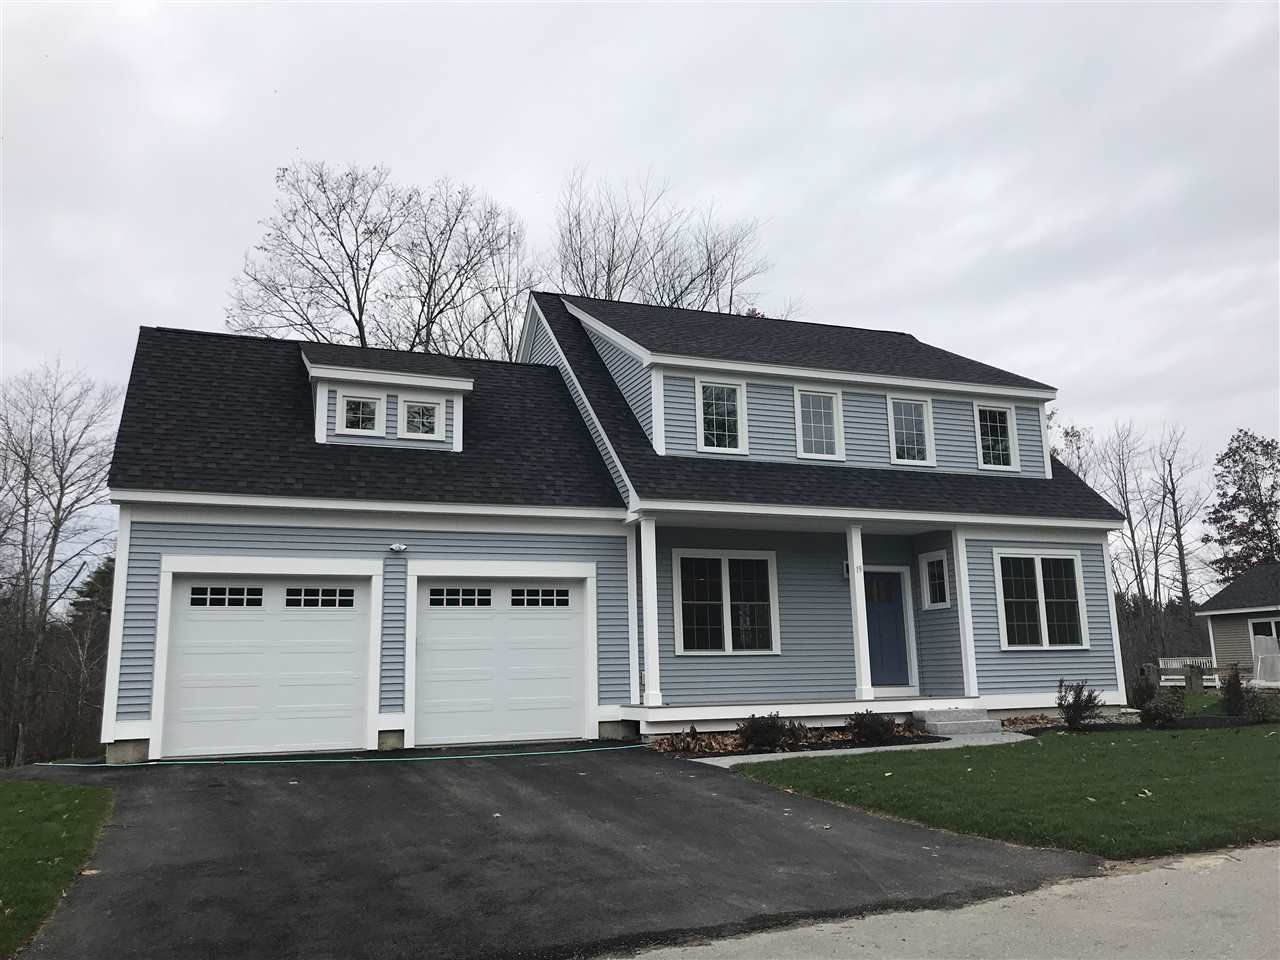 19 daybreak dr 15 newmarket nh 03857 mls 4667999 for Classic homes realty llc